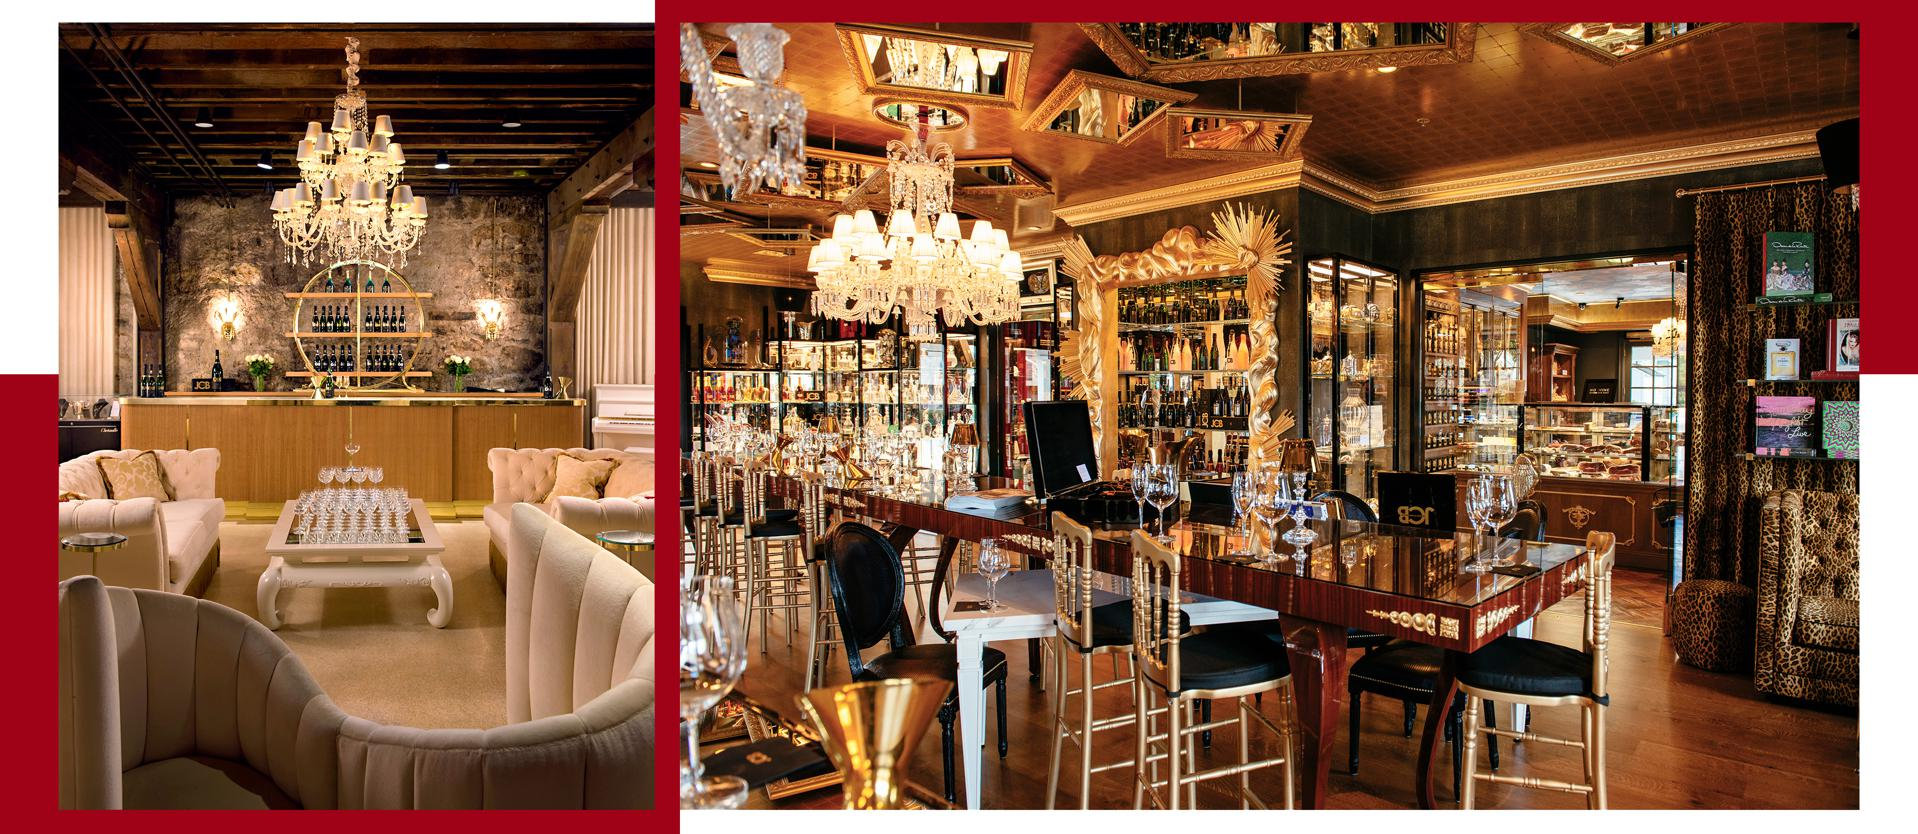 The elegant tasting rooms at two of Boisset's vineyards, Buena Vista (left) and Yountville